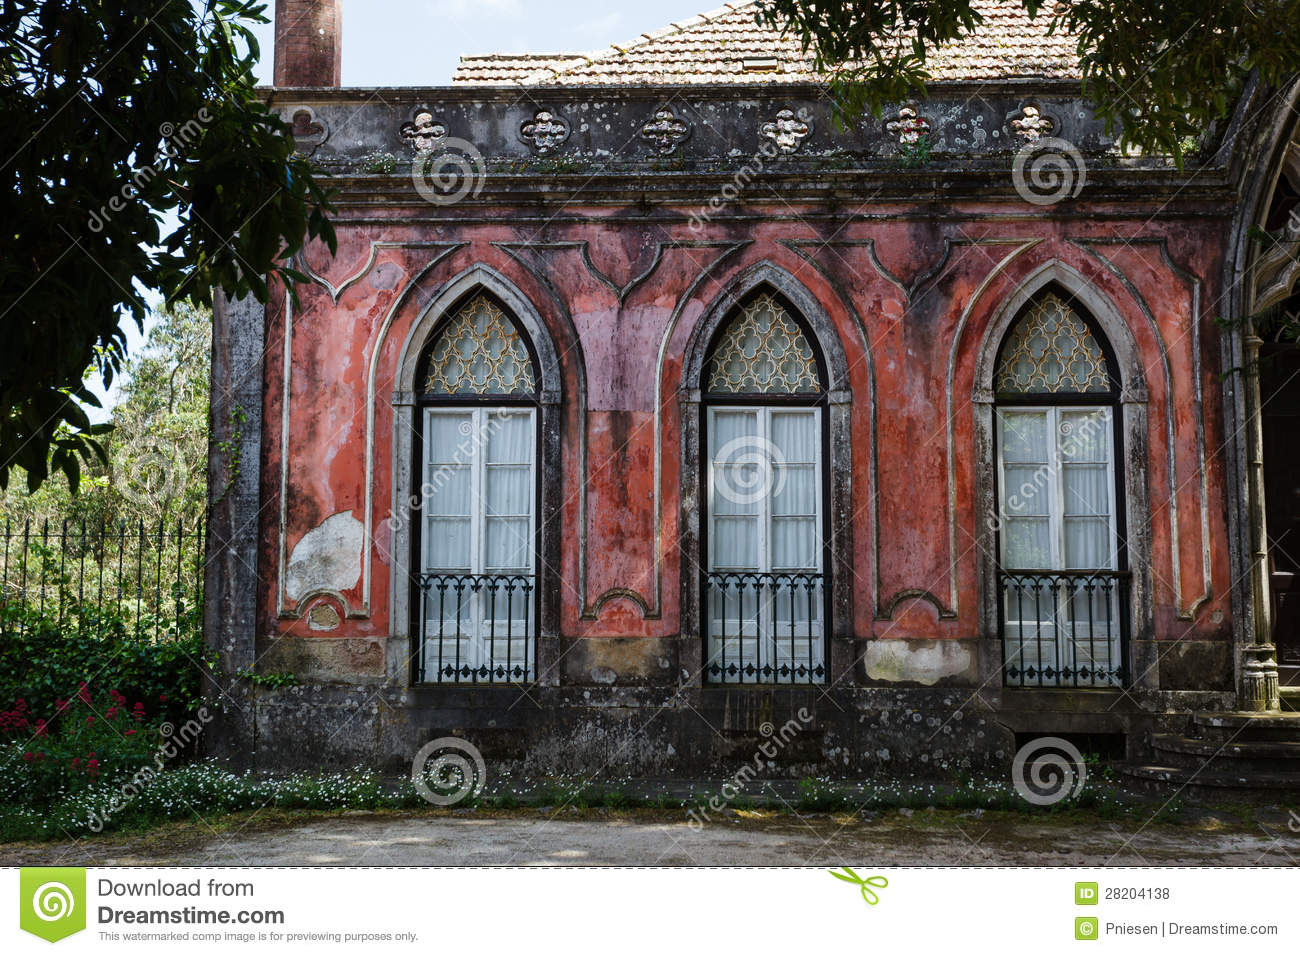 Lovely old building with red facade arched windows french doors lovely old building with red facade arched windows french doors rubansaba